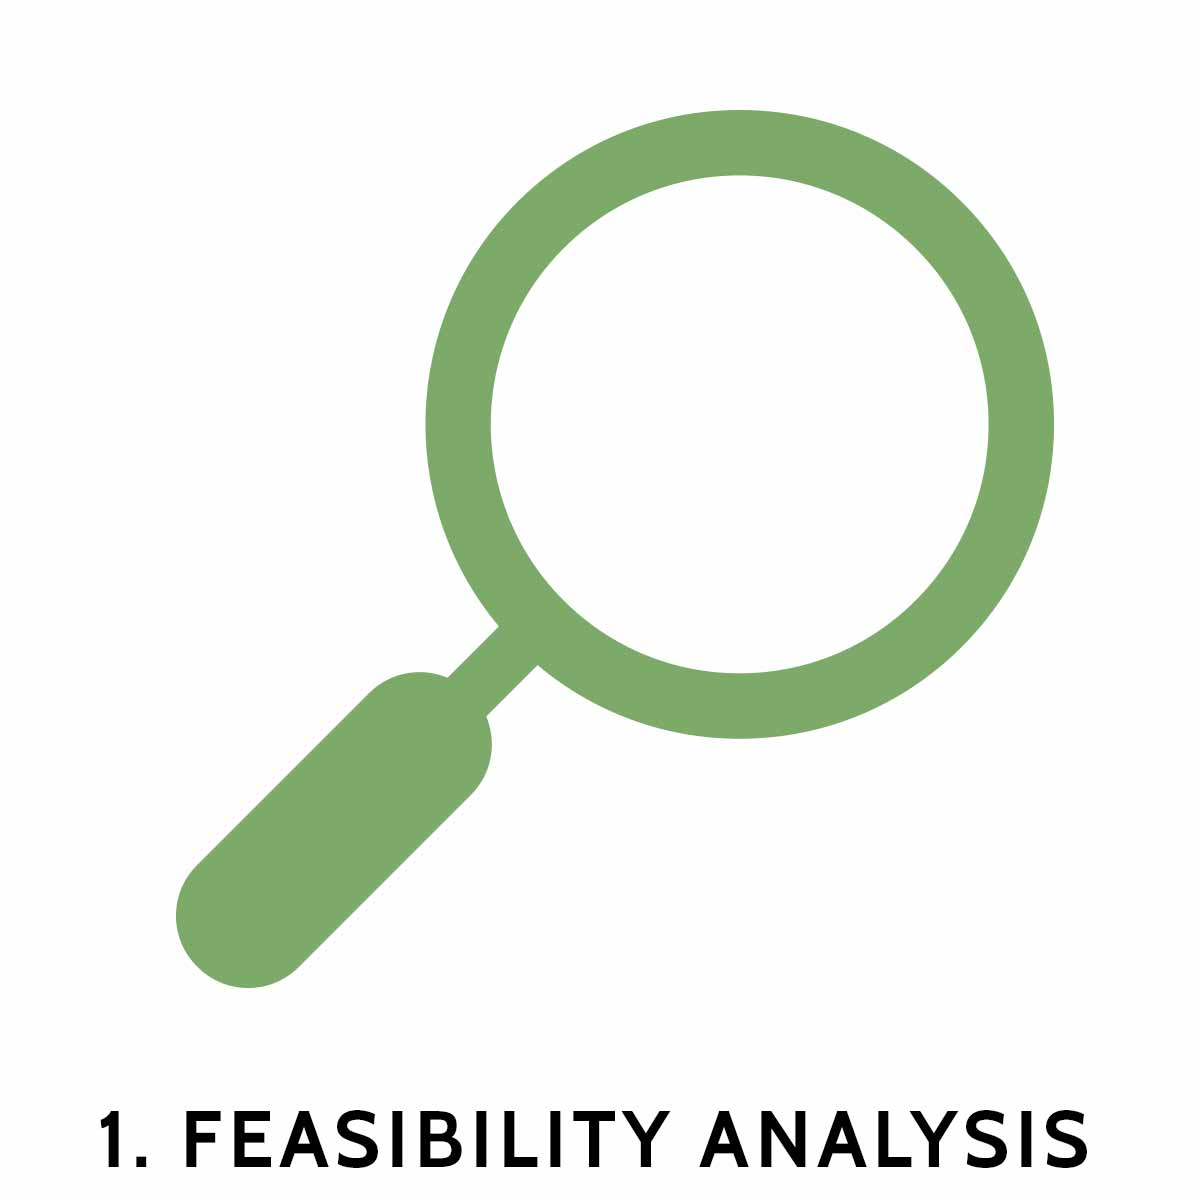 Infrastructure Energy - A new Approach That Enables Grid Modernization - 1. Feasibility Analysis